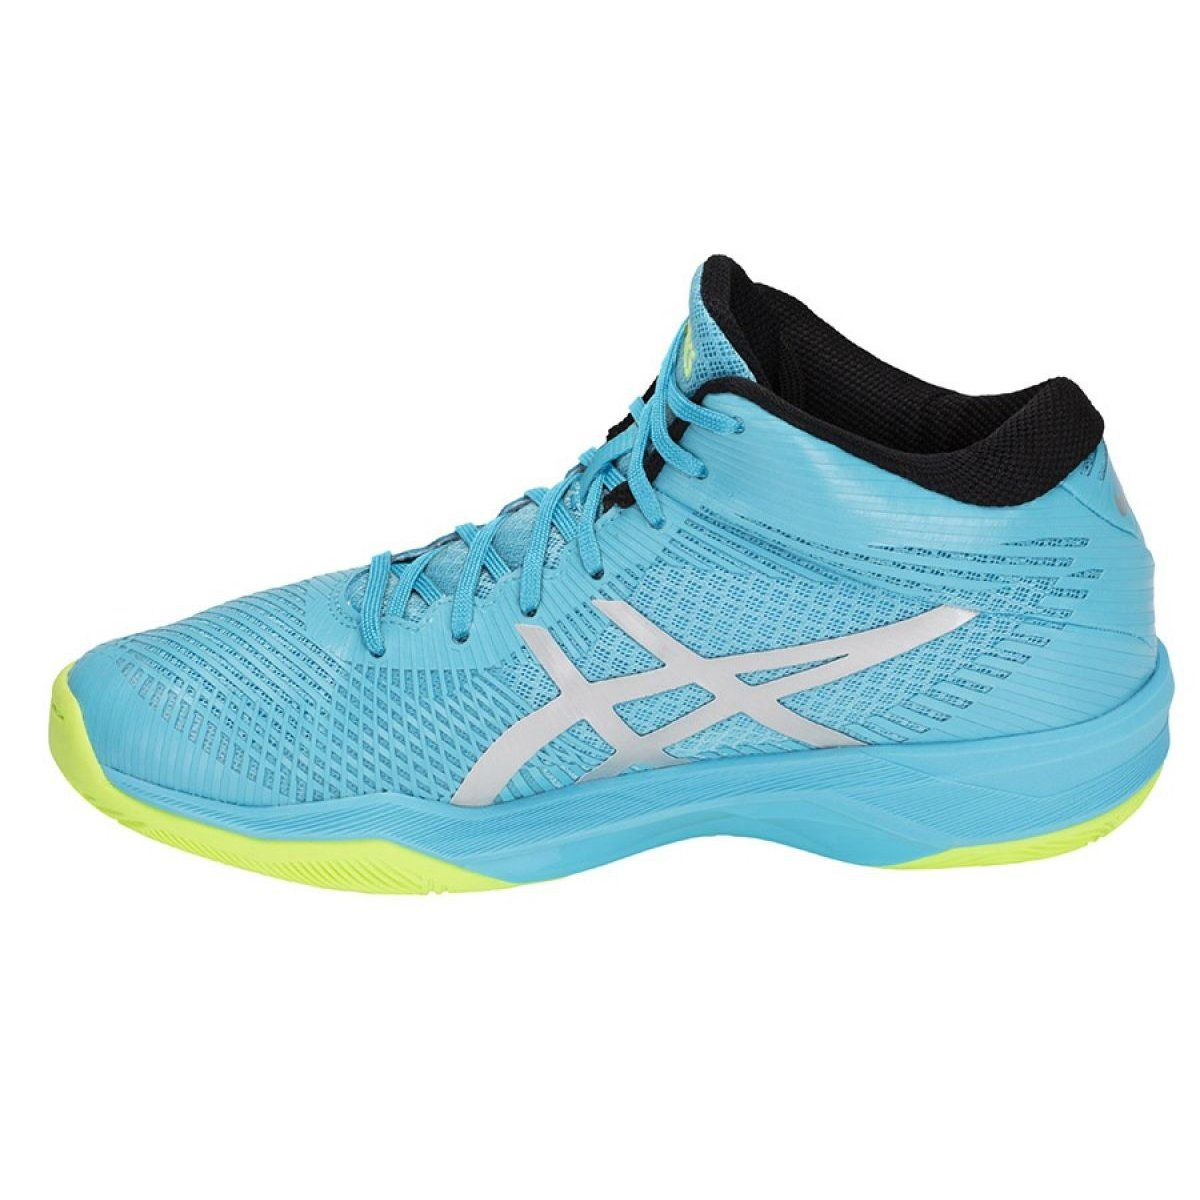 Volleyball Shoes Asics Gel Volley Elite Ff Mt M B750n 400 Blue Multicolored Volleyball Shoes Mens Volleyball Shoes Asics